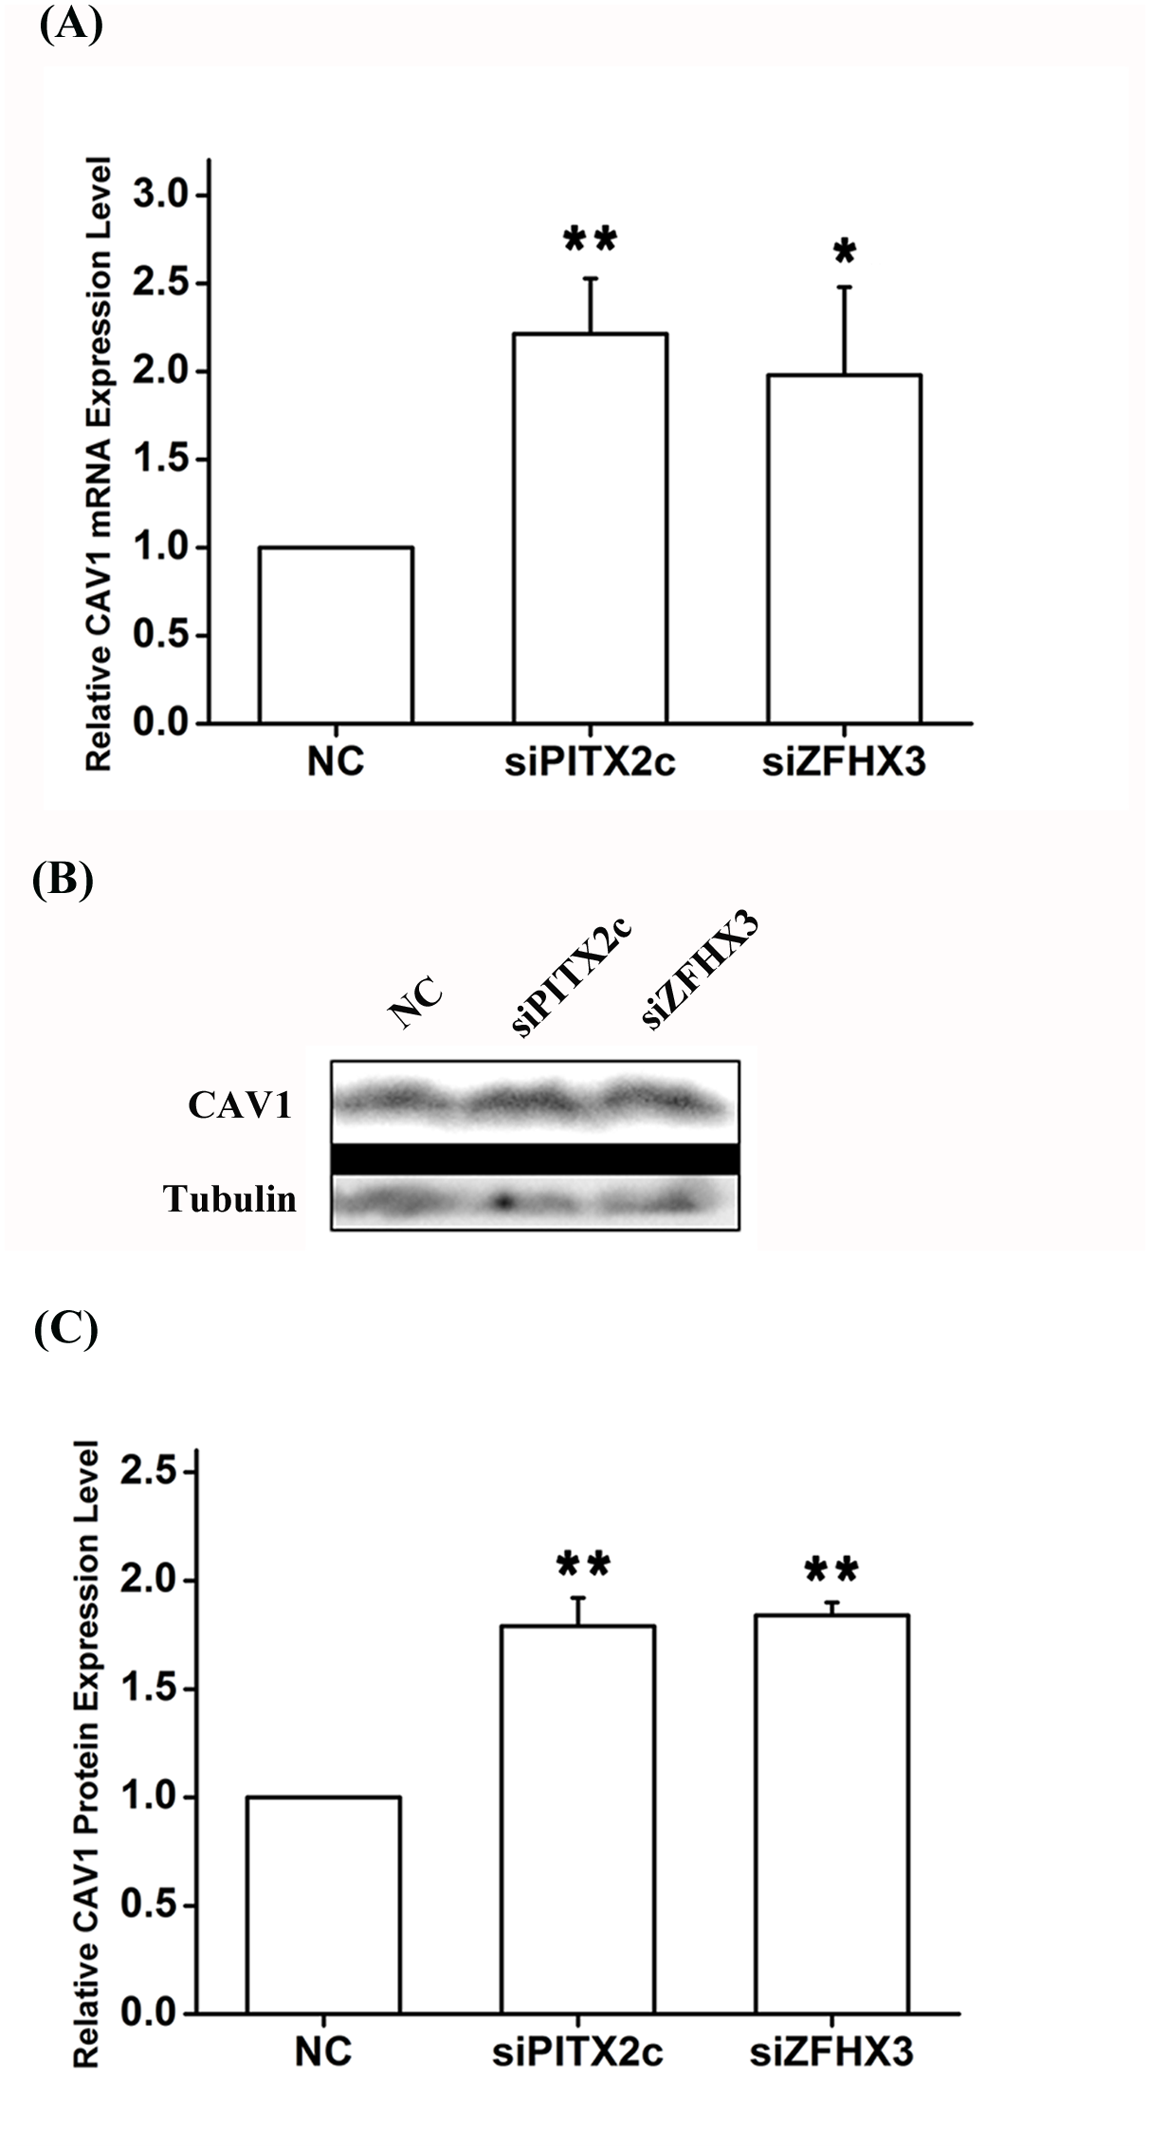 <i>PITX2c</i> and <i>ZFHX3</i> negatively regulate expression of the <i>CAV1</i> gene.